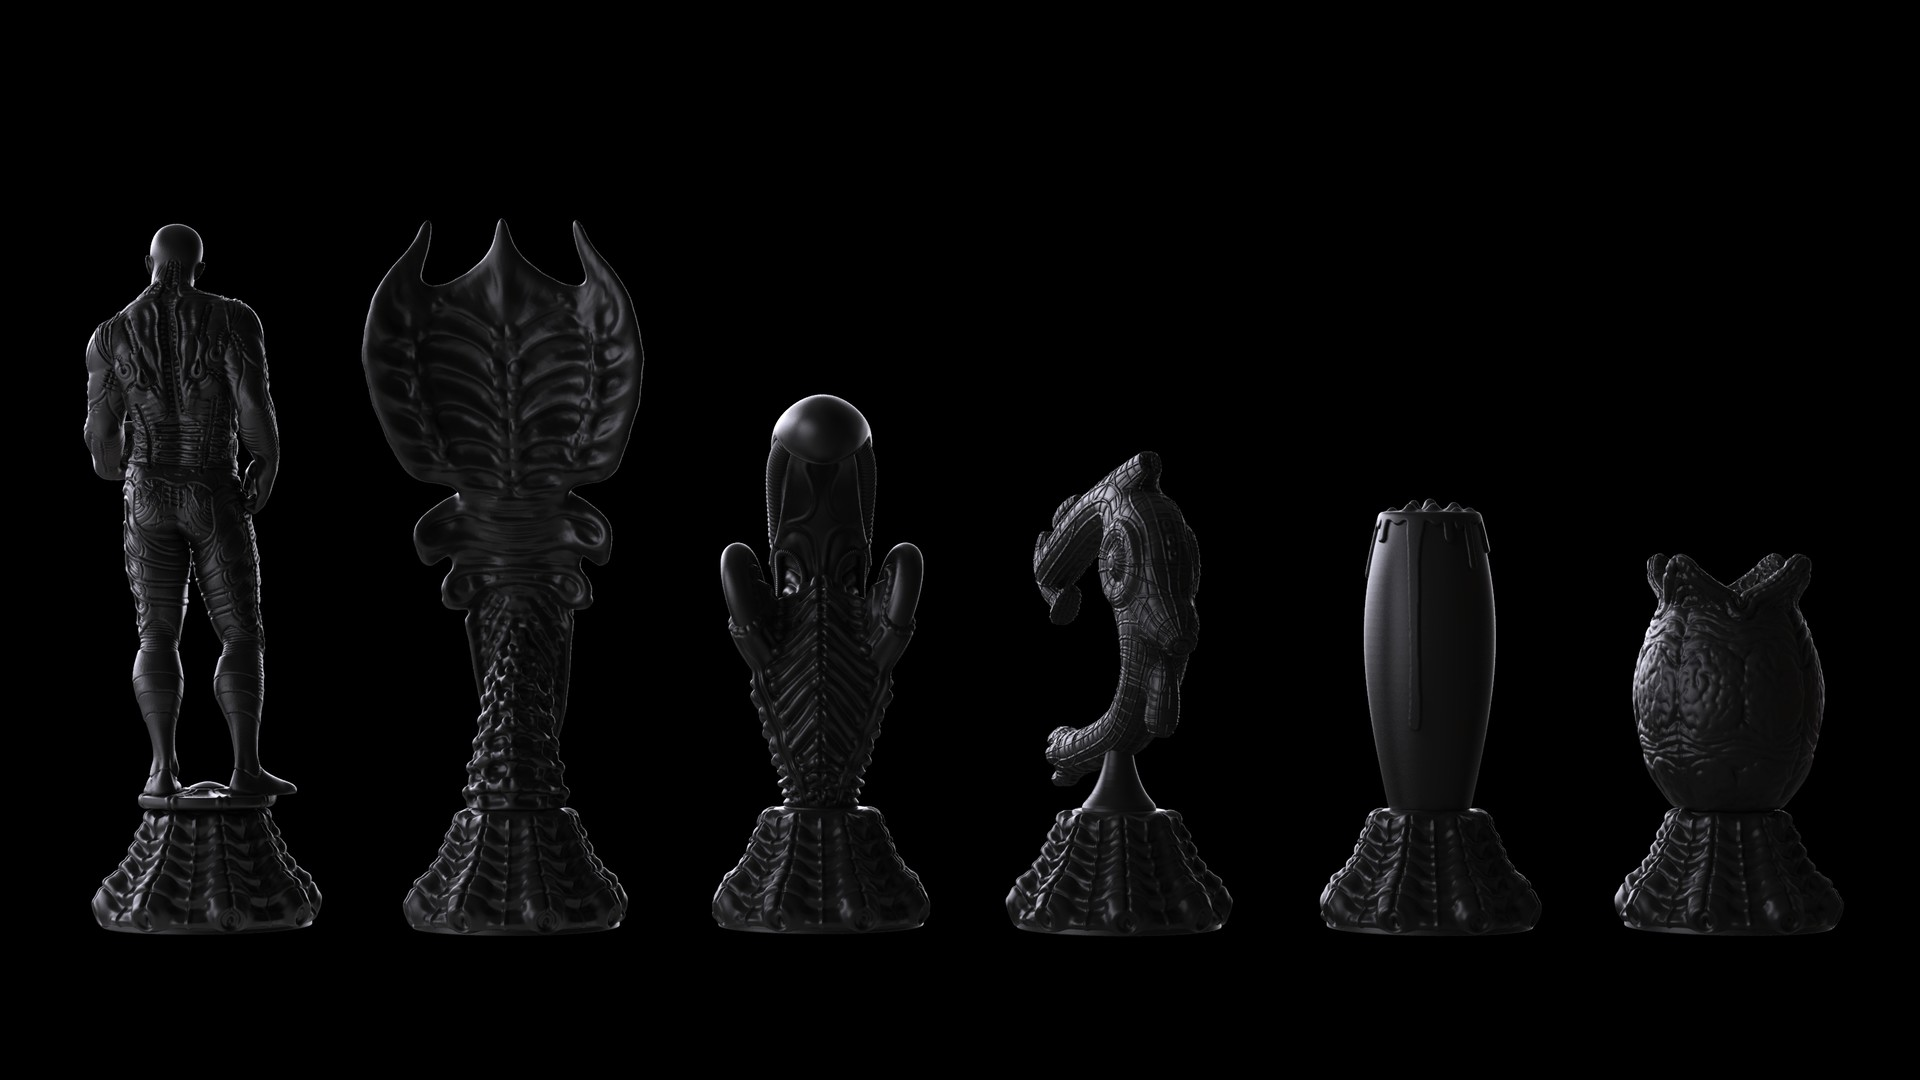 Ken calvert alien chess renders 1055